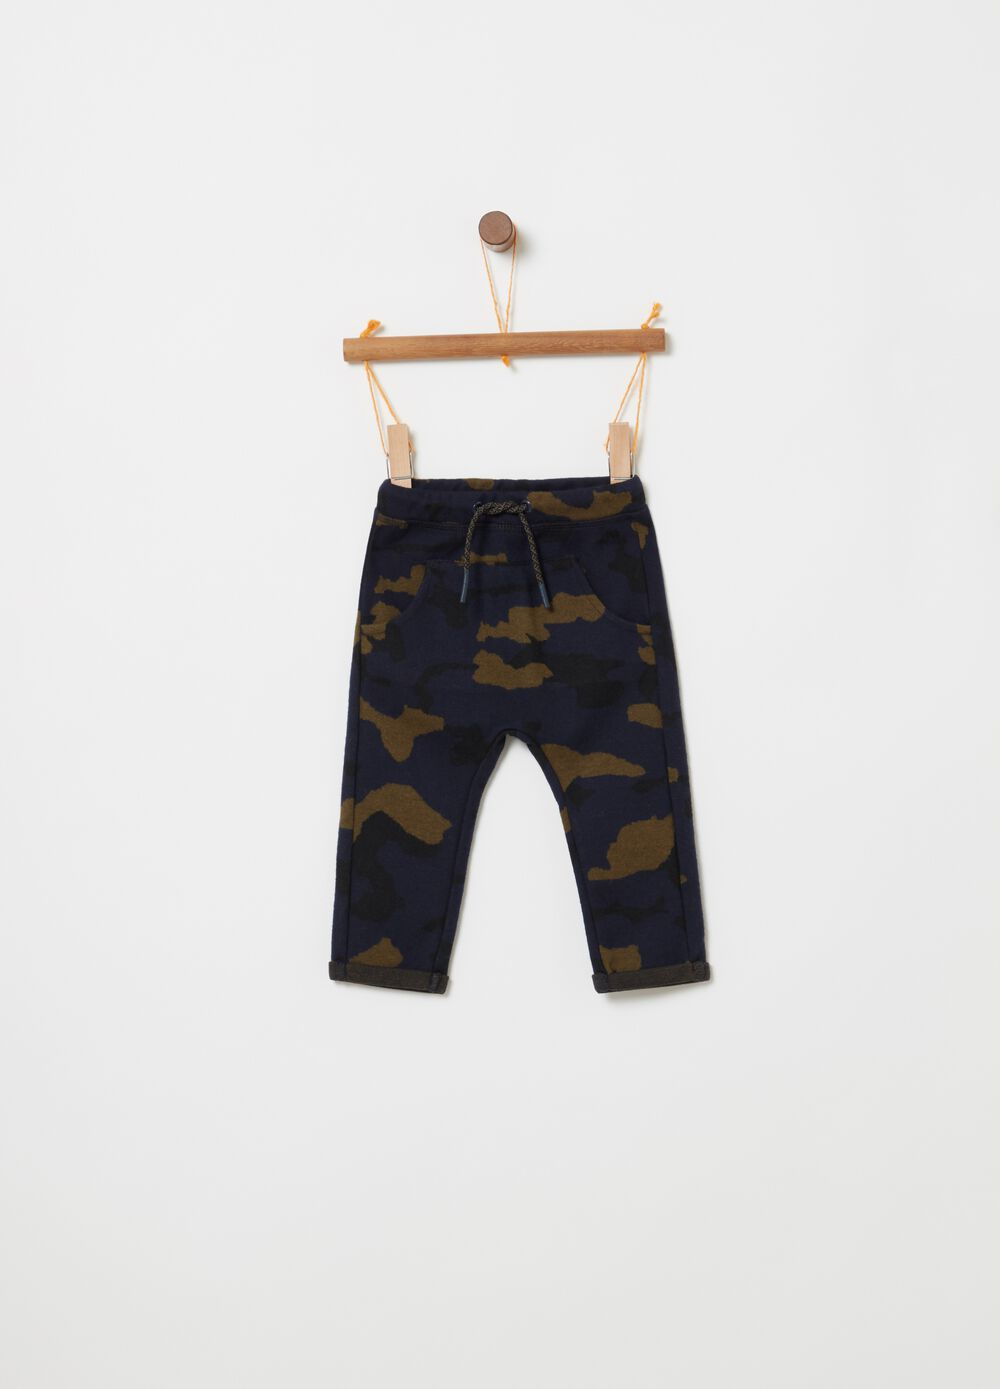 Trousers with low crotch and camouflage print